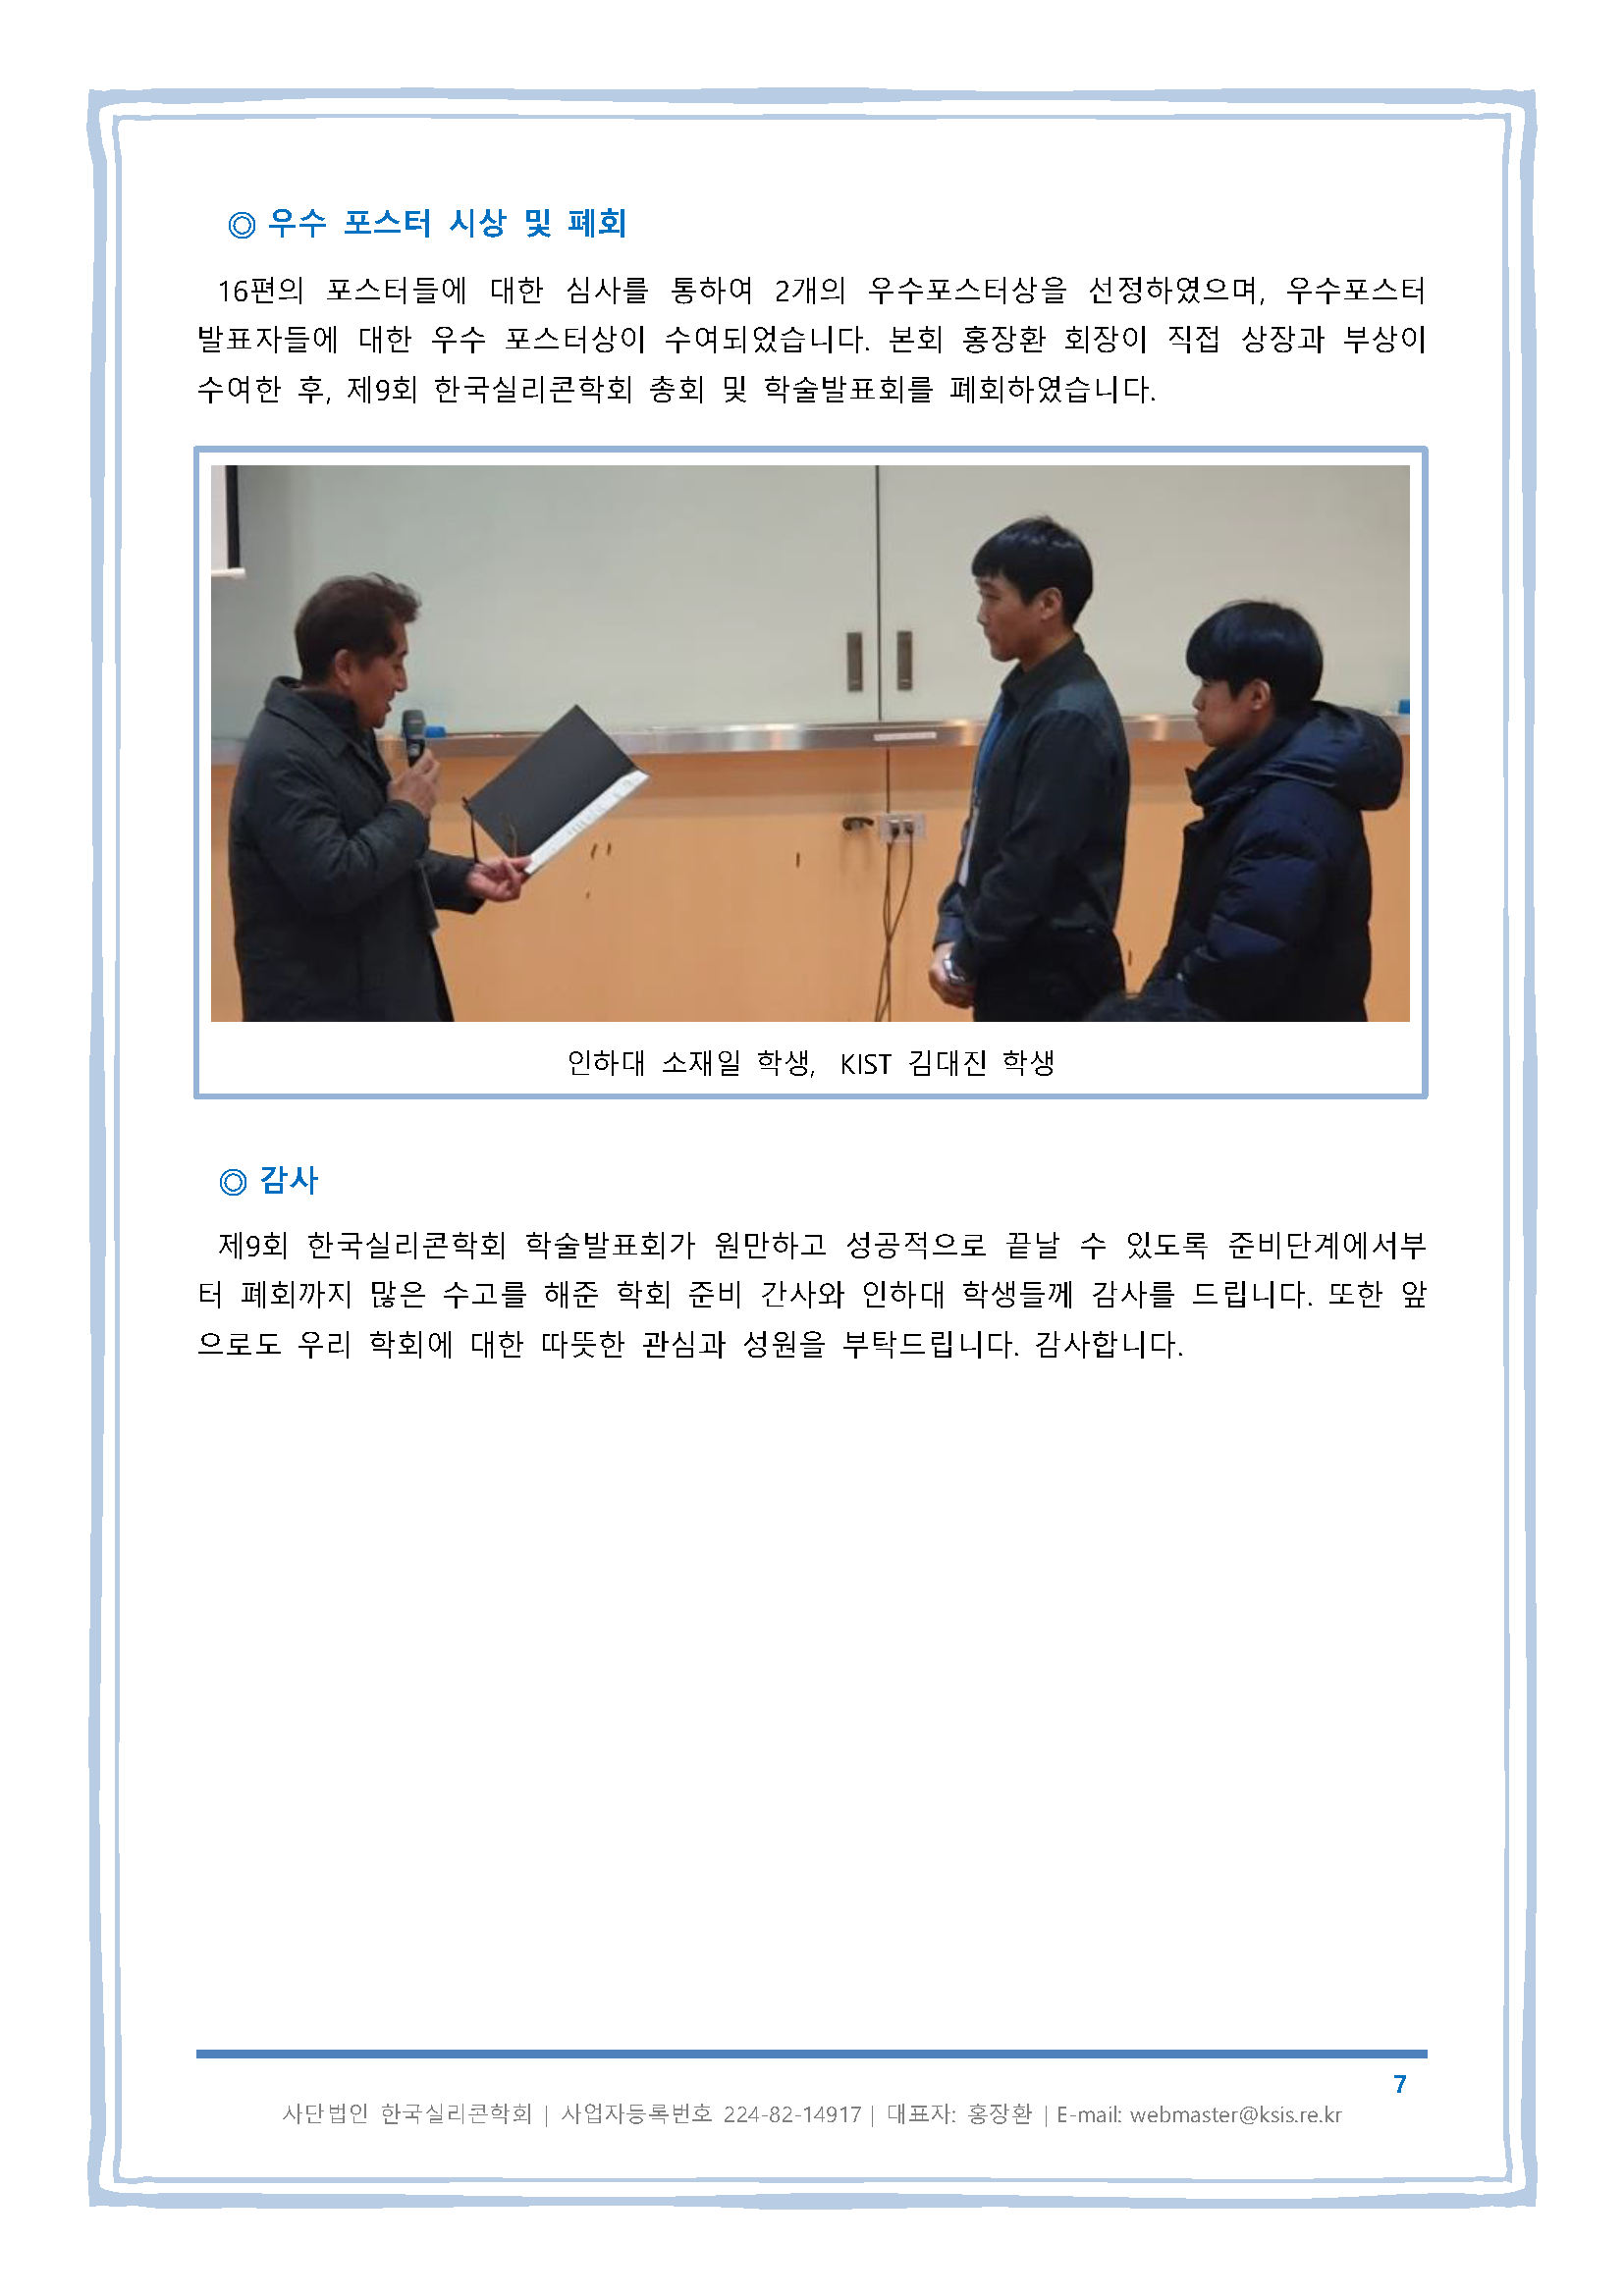 2020-Si_news letter_Page_7.png